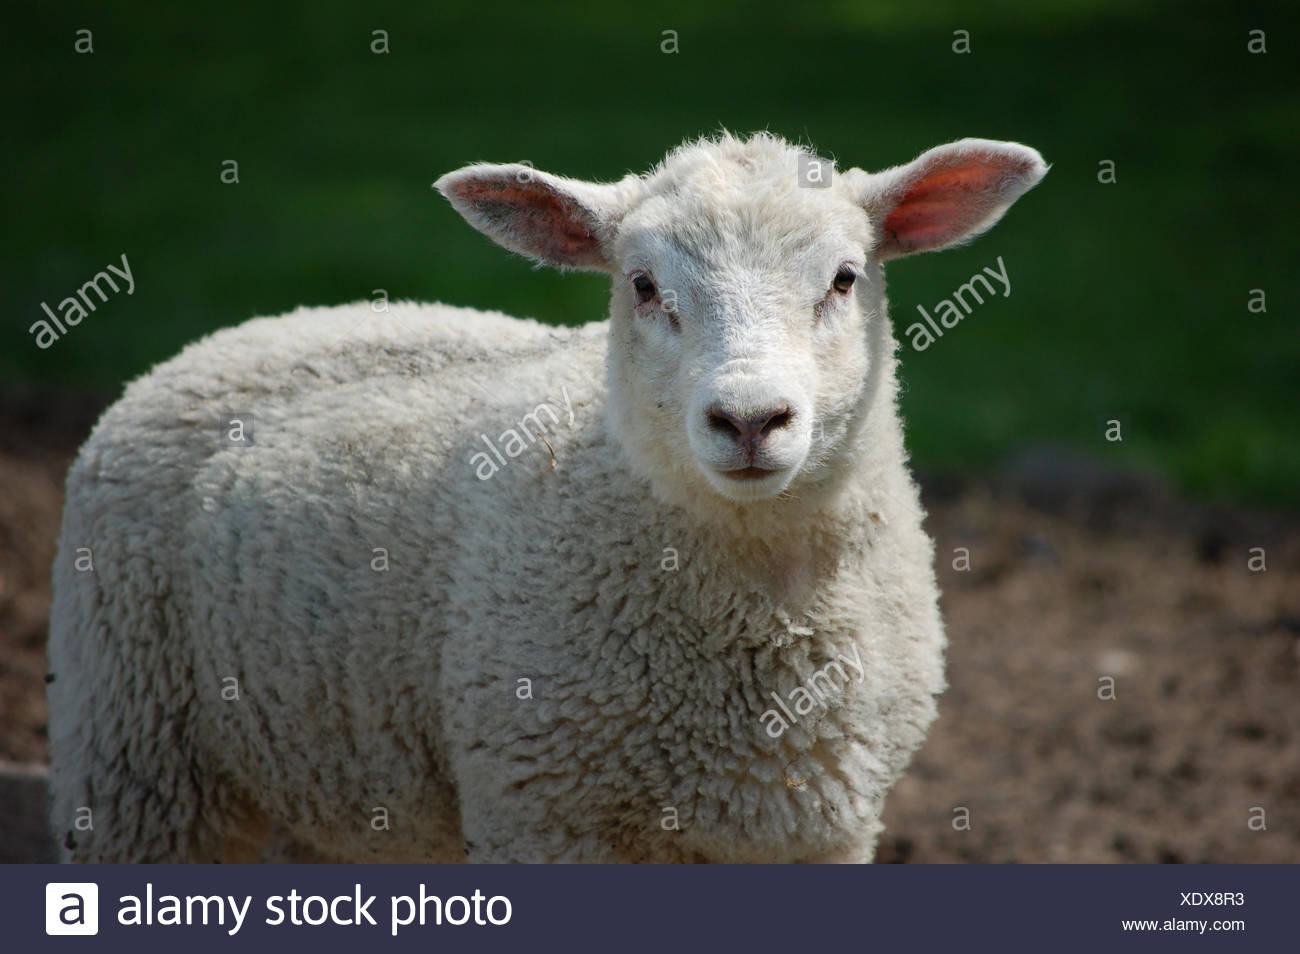 sweet animal agriculture farming field sheep wool easter spring bouncing bounces hop skipping frisks jumping jump ears wise - Stock Image